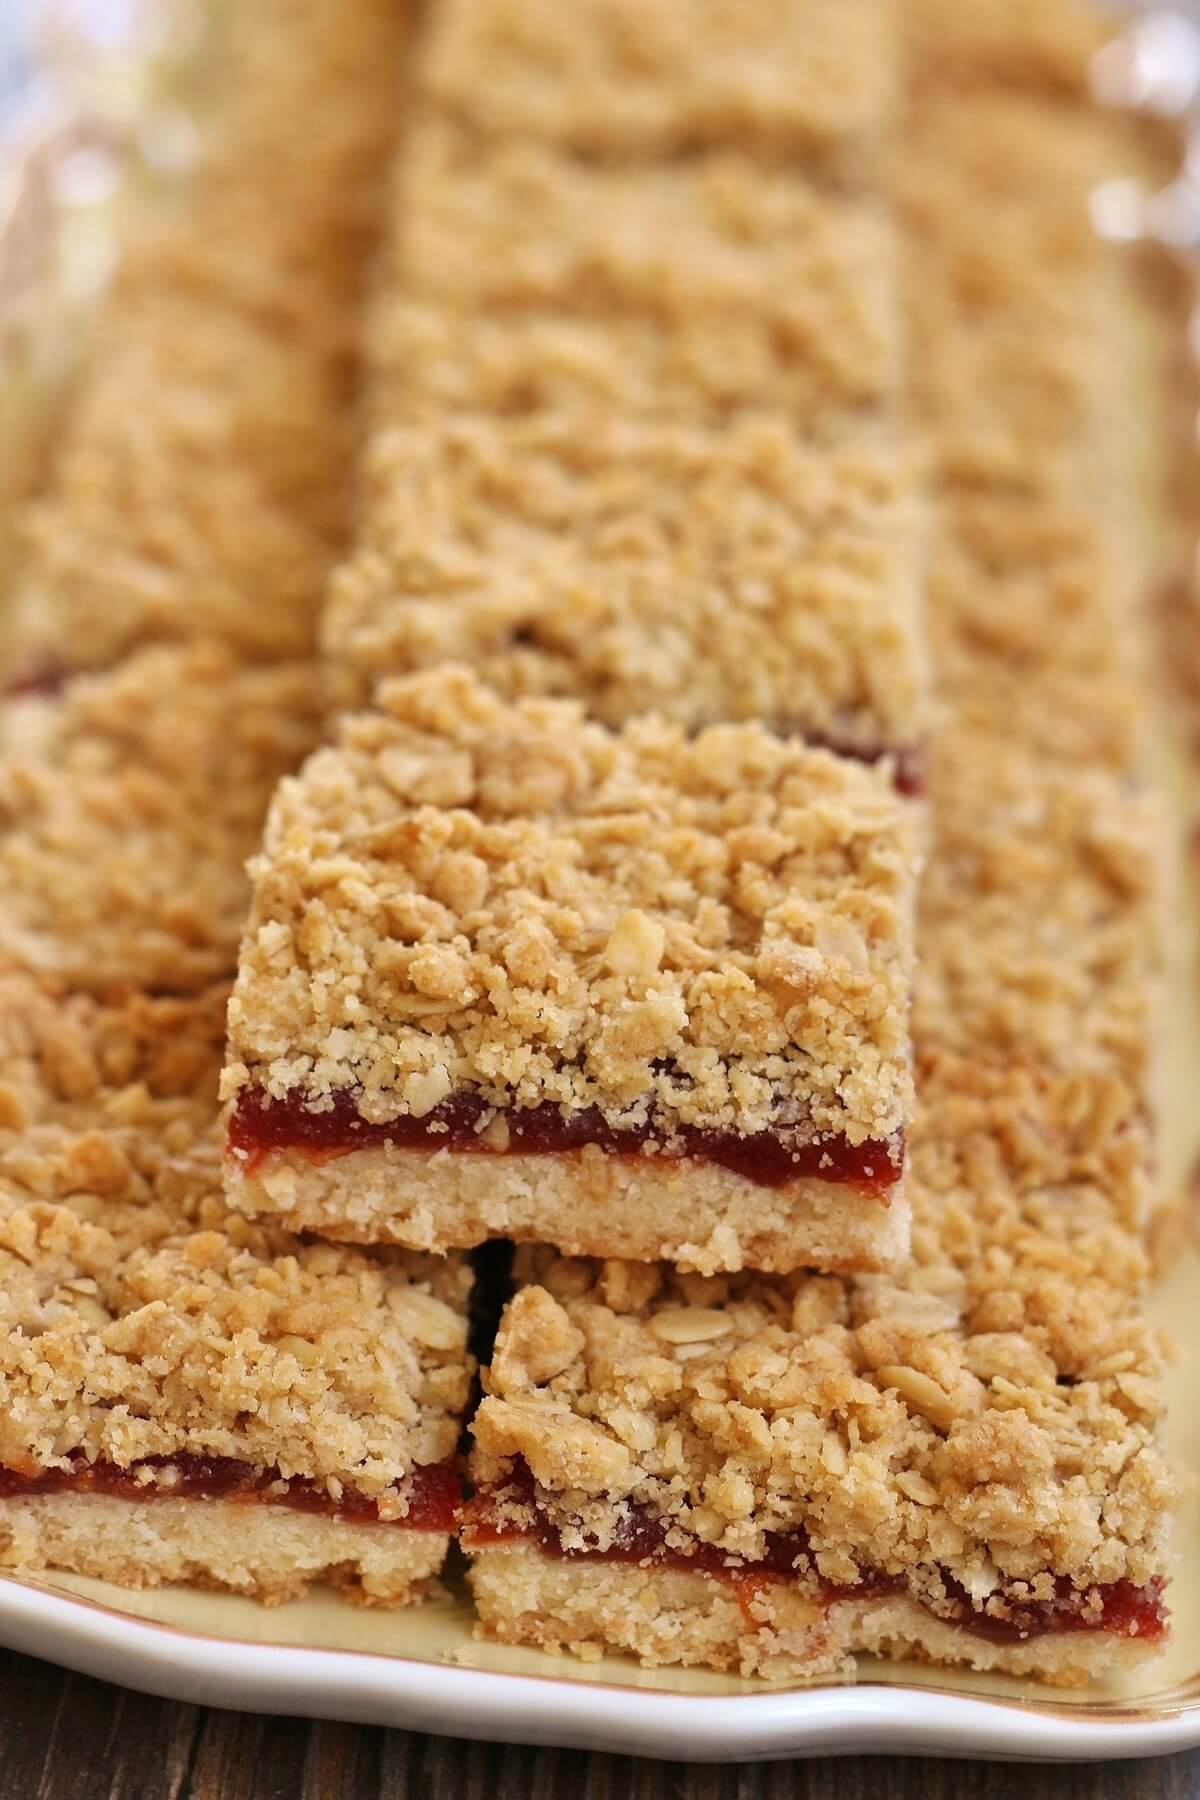 side view of a platter of guava bars with shortbread base and oat topping